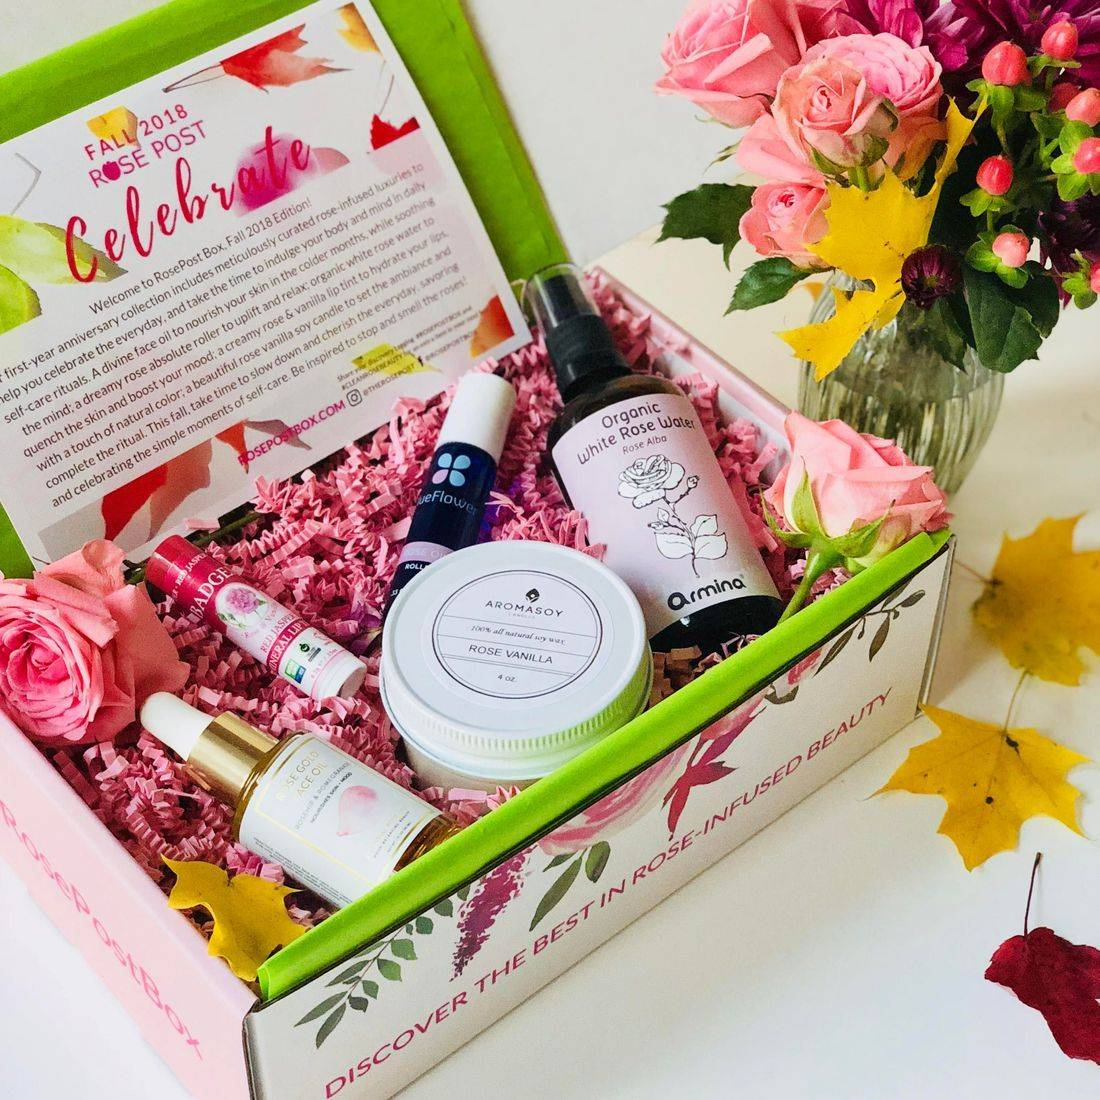 Best Rose skincare, Rose Gift Box, RosePost Fall '18 Box, RosePost Box, Green Beauty Subscription, Rose Beauty Box, Green Beauty Box, Rose Skincare, Clean Rose Beauty